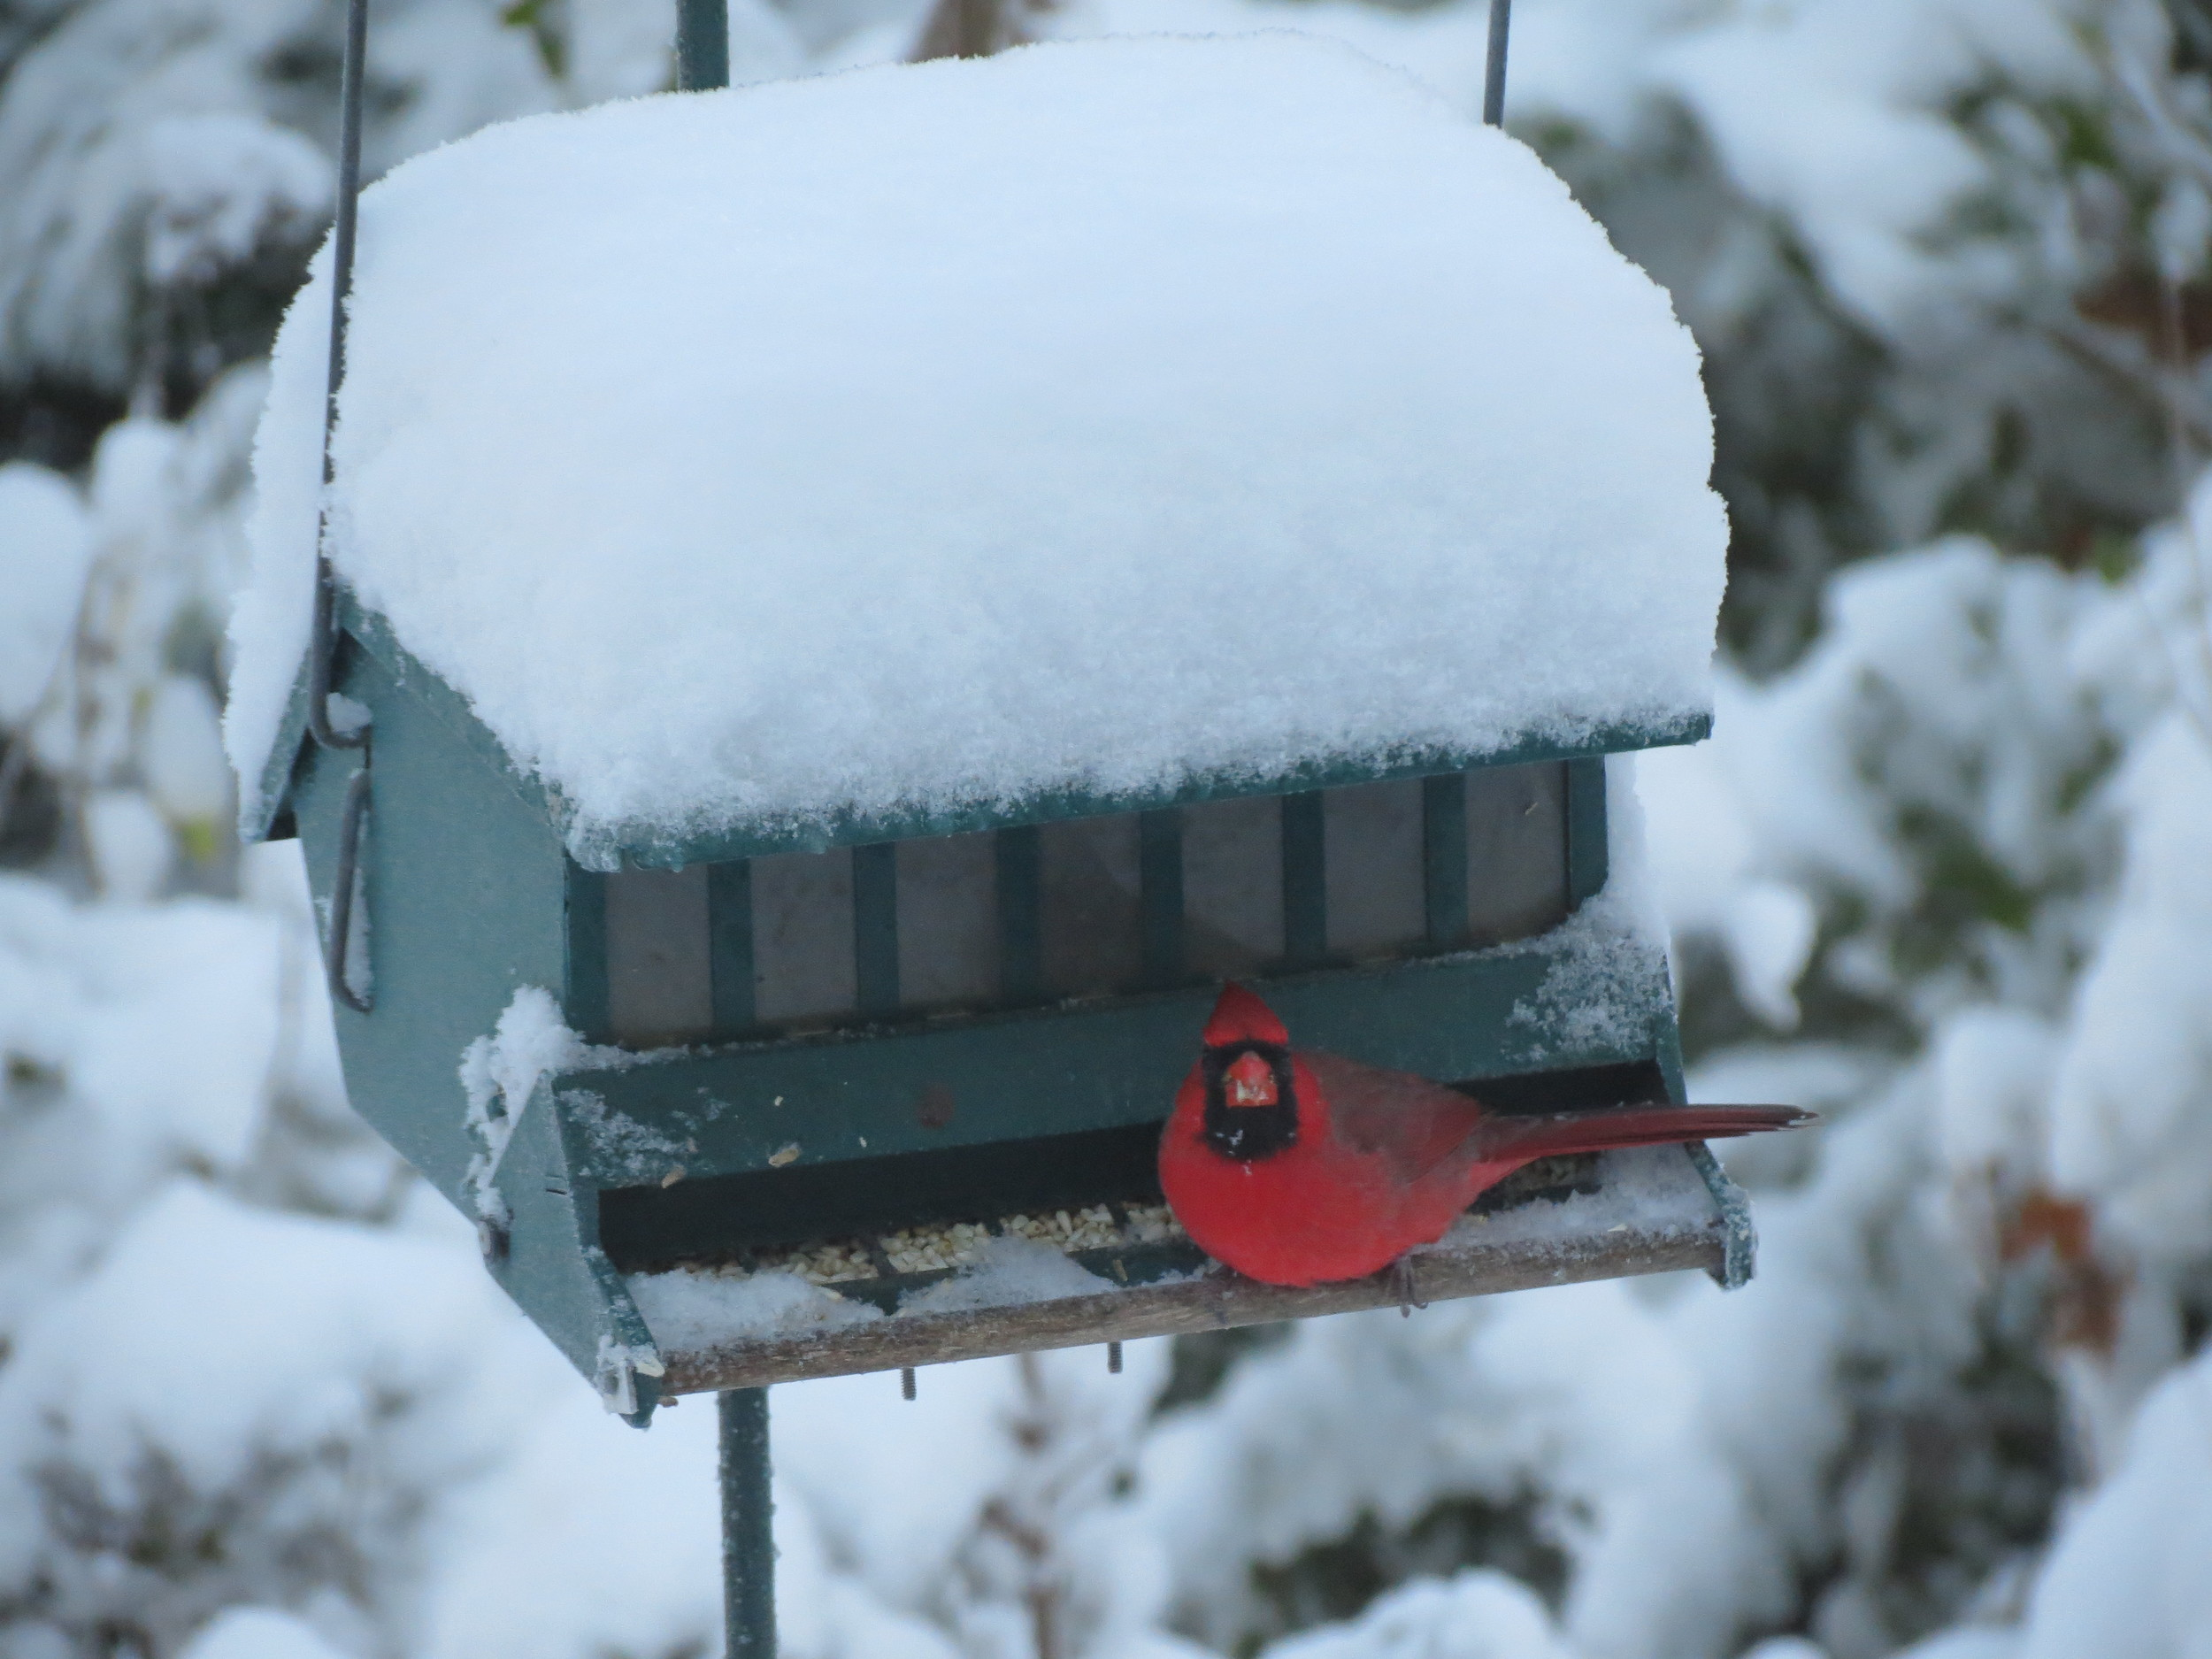 Always wonderful to report Cardinals at our feeders during Project FeederWatch season!!